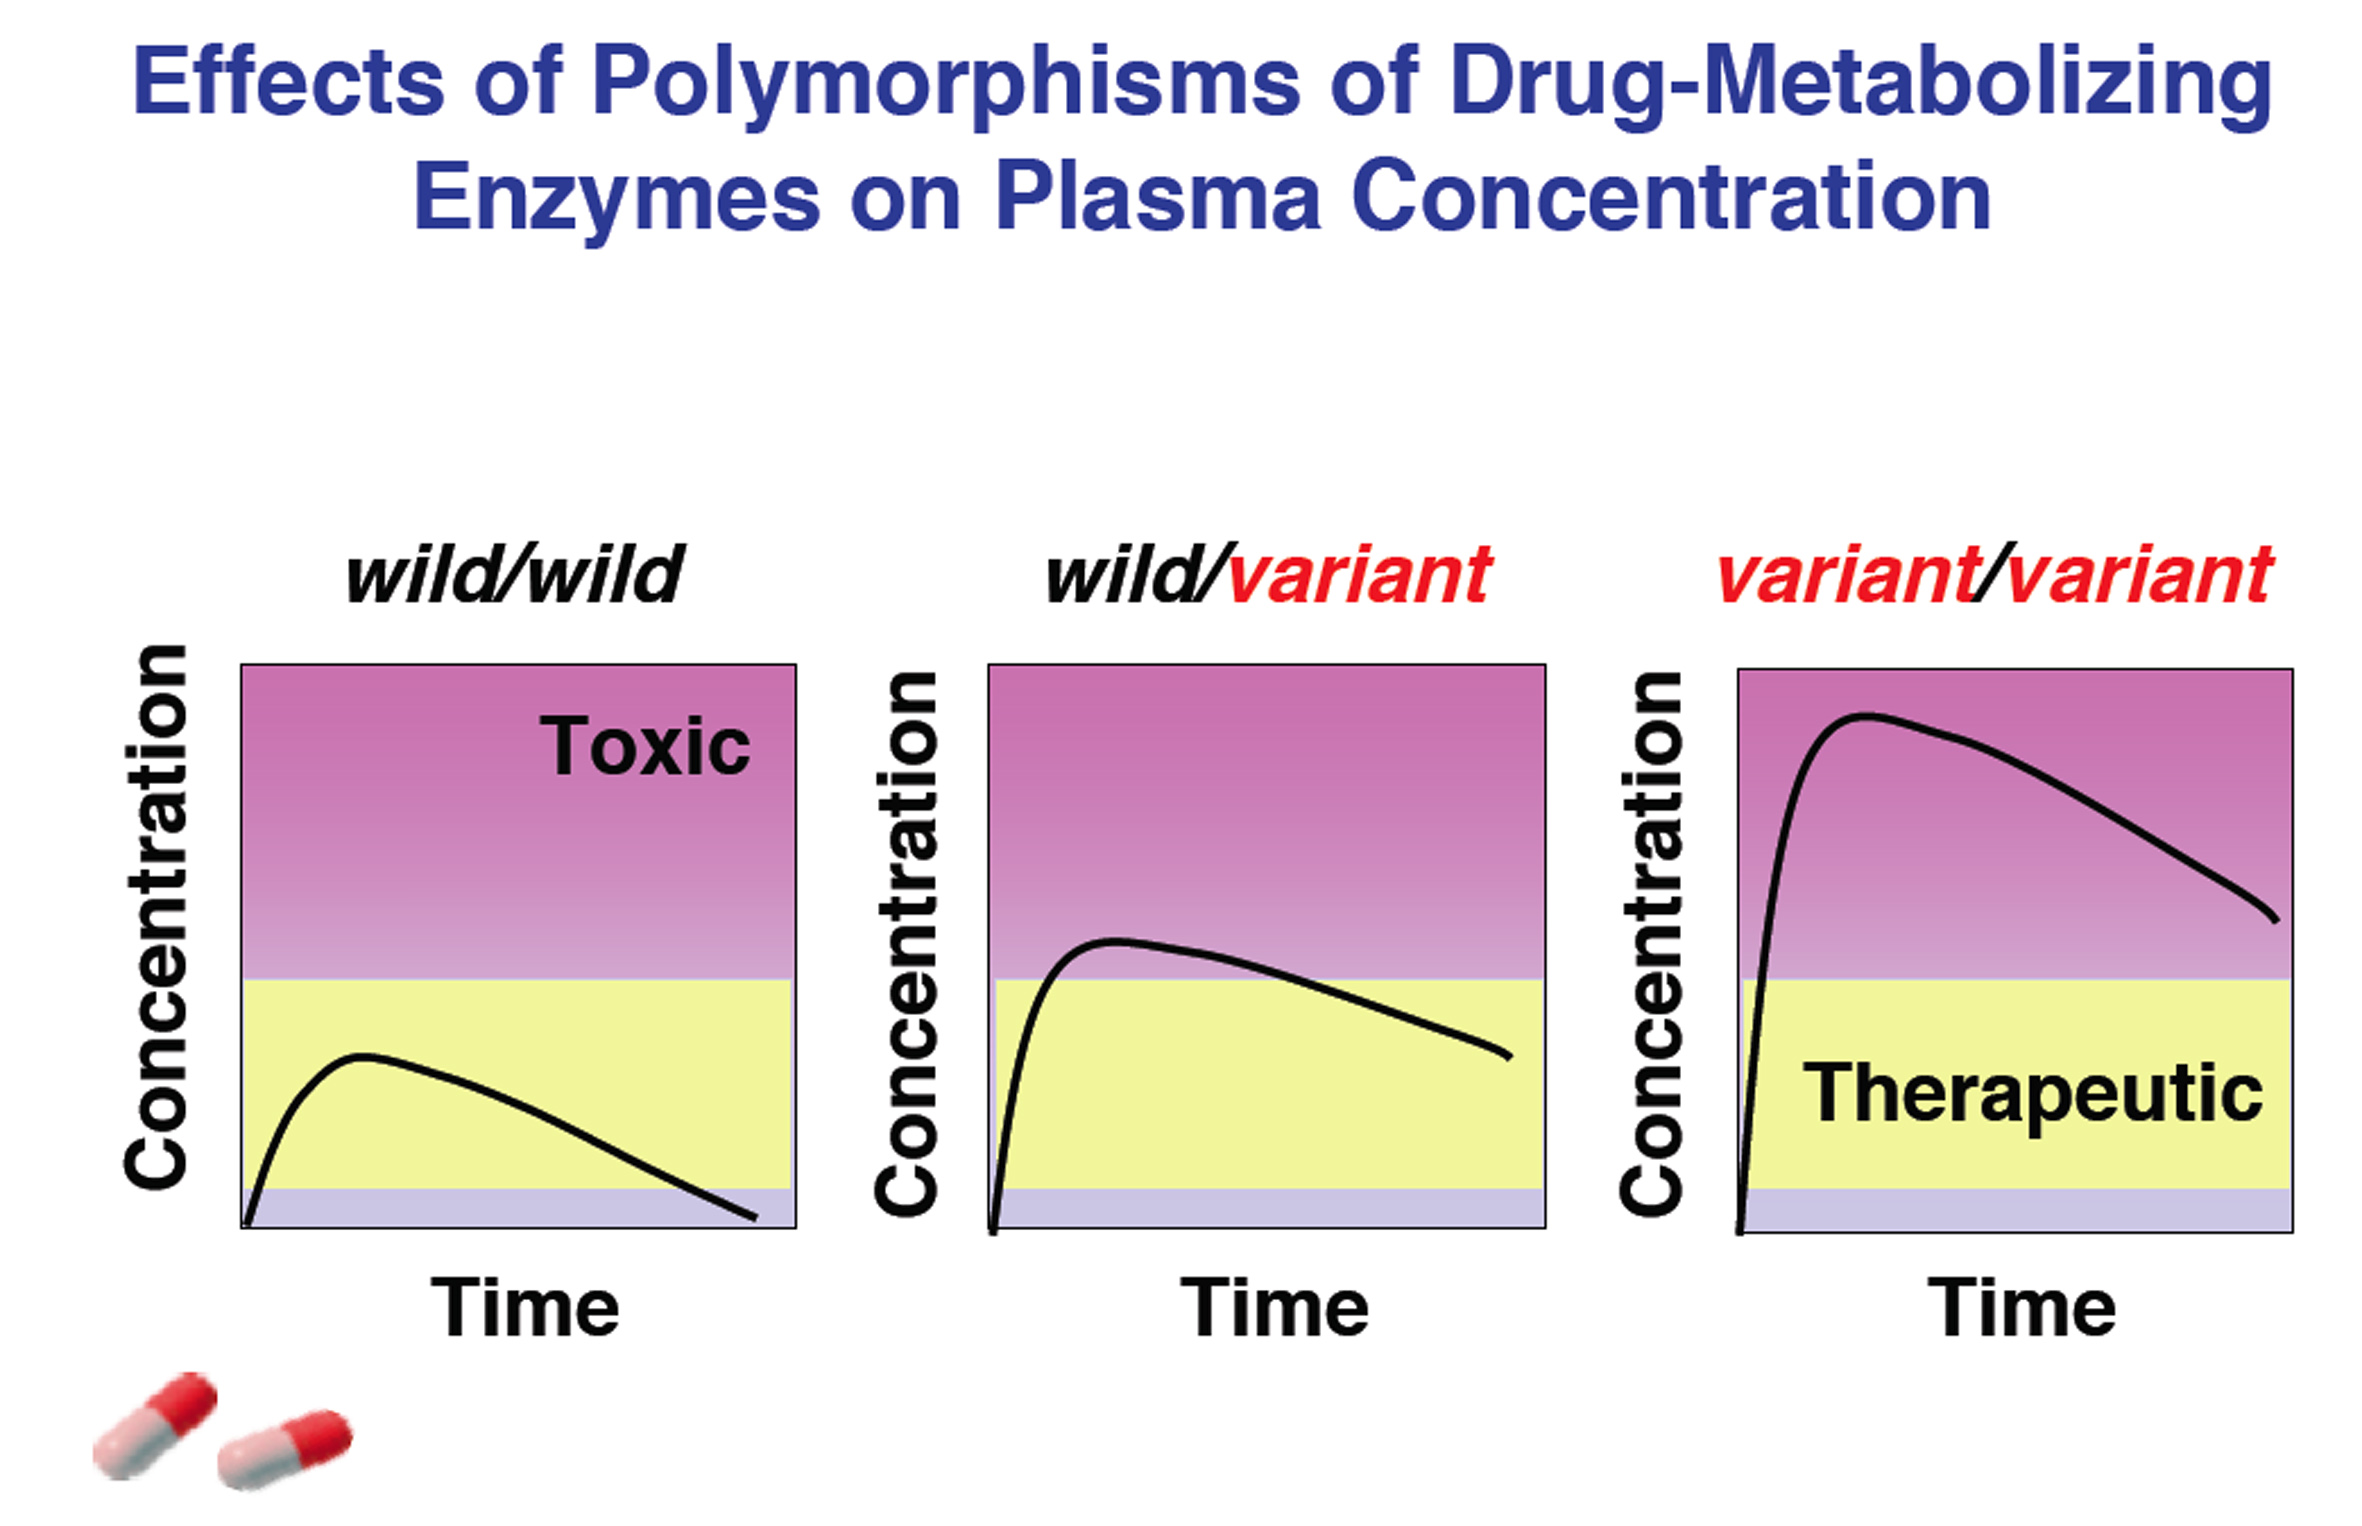 Genetic polymorphisms of Drug-metabolizing enzymes